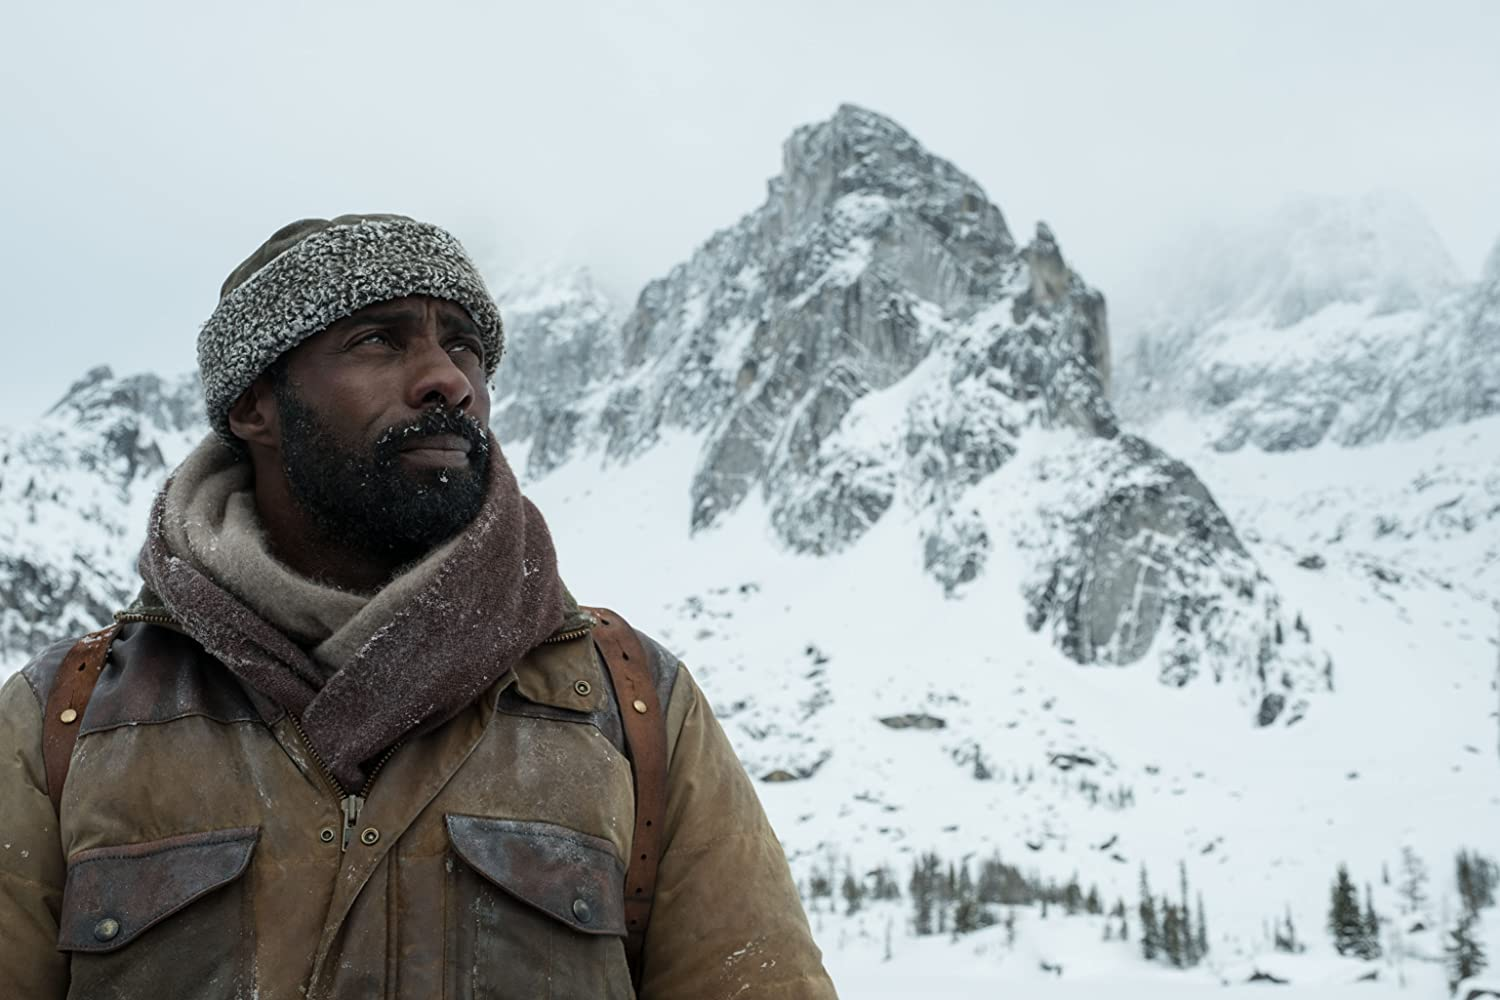 Idris Elba in The Mountain Between Us (2017)